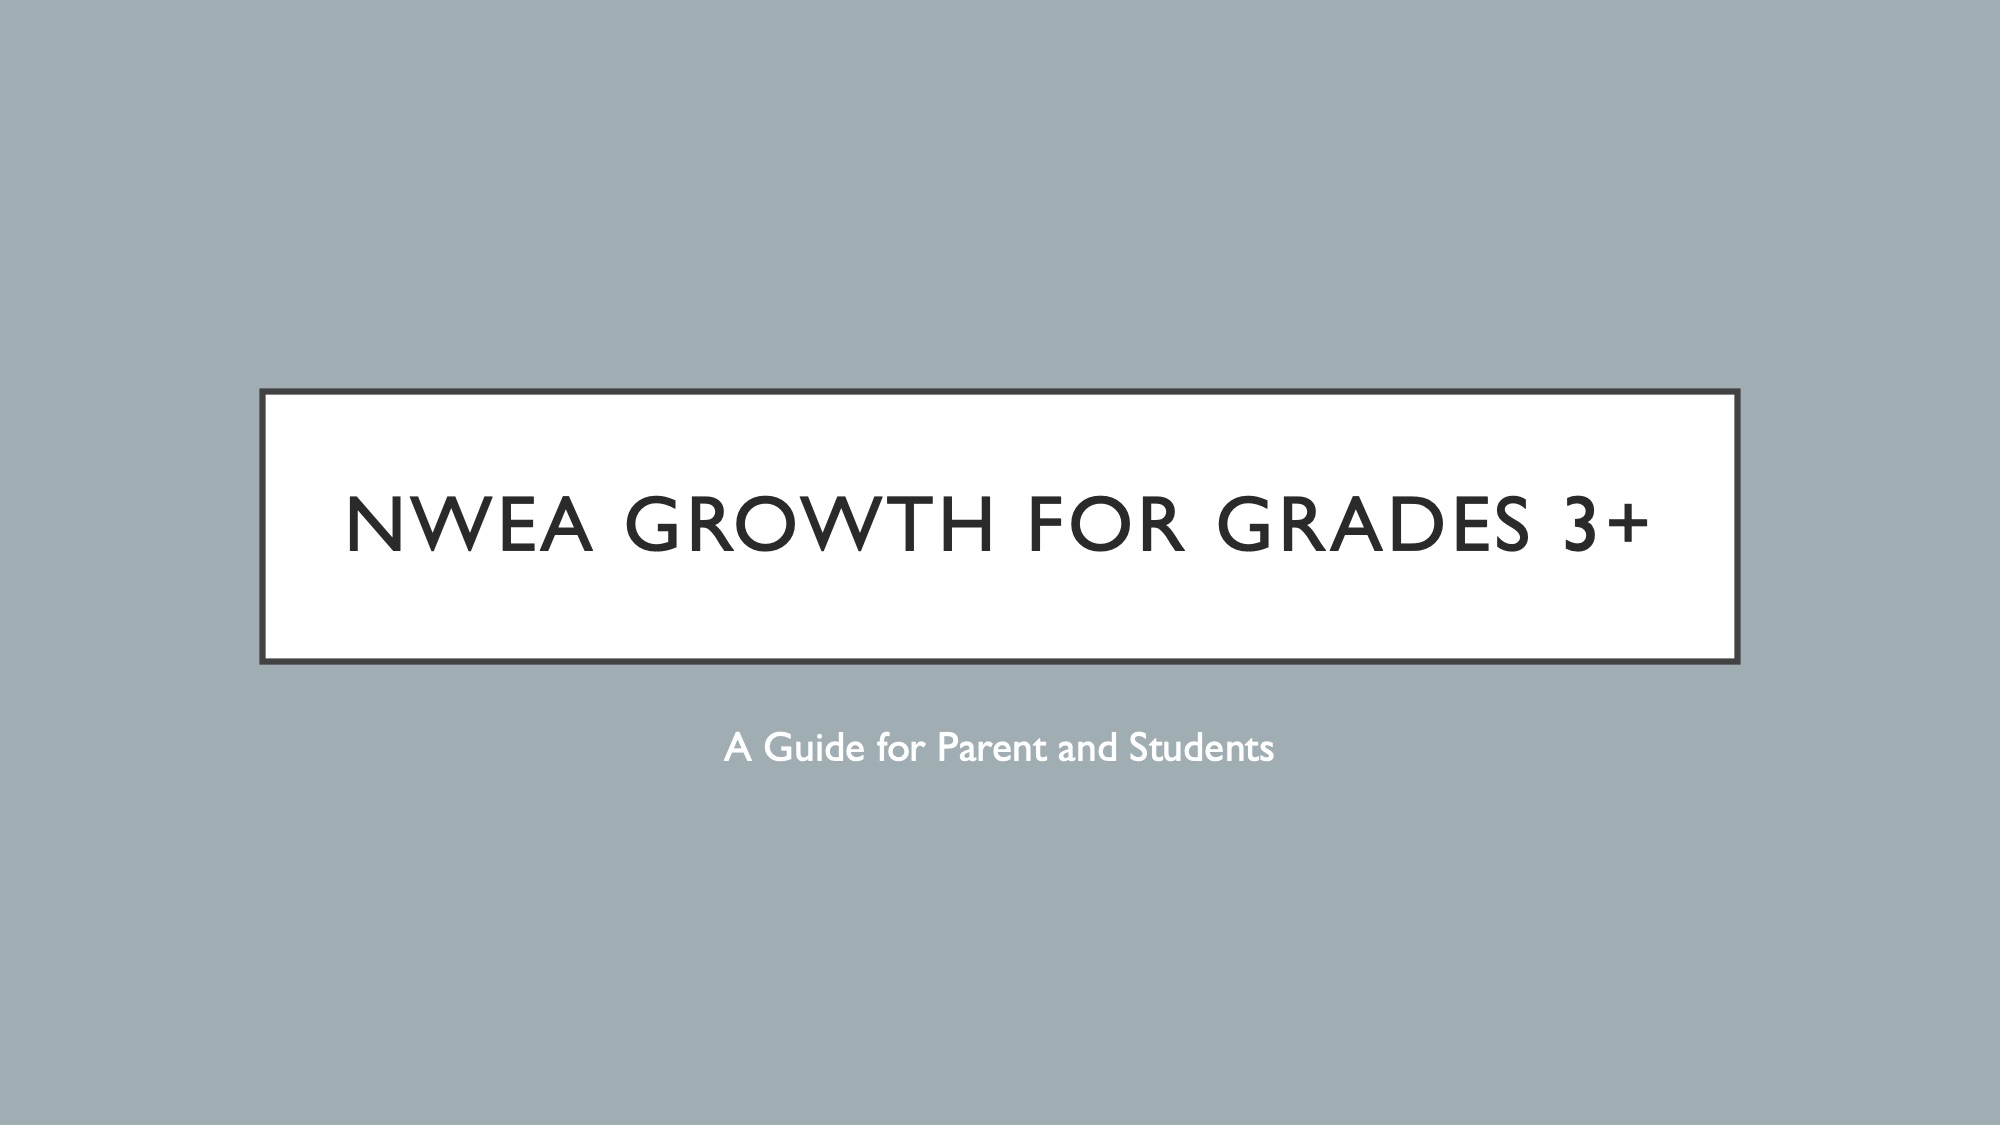 Parent & Student Guide for Grades 3+